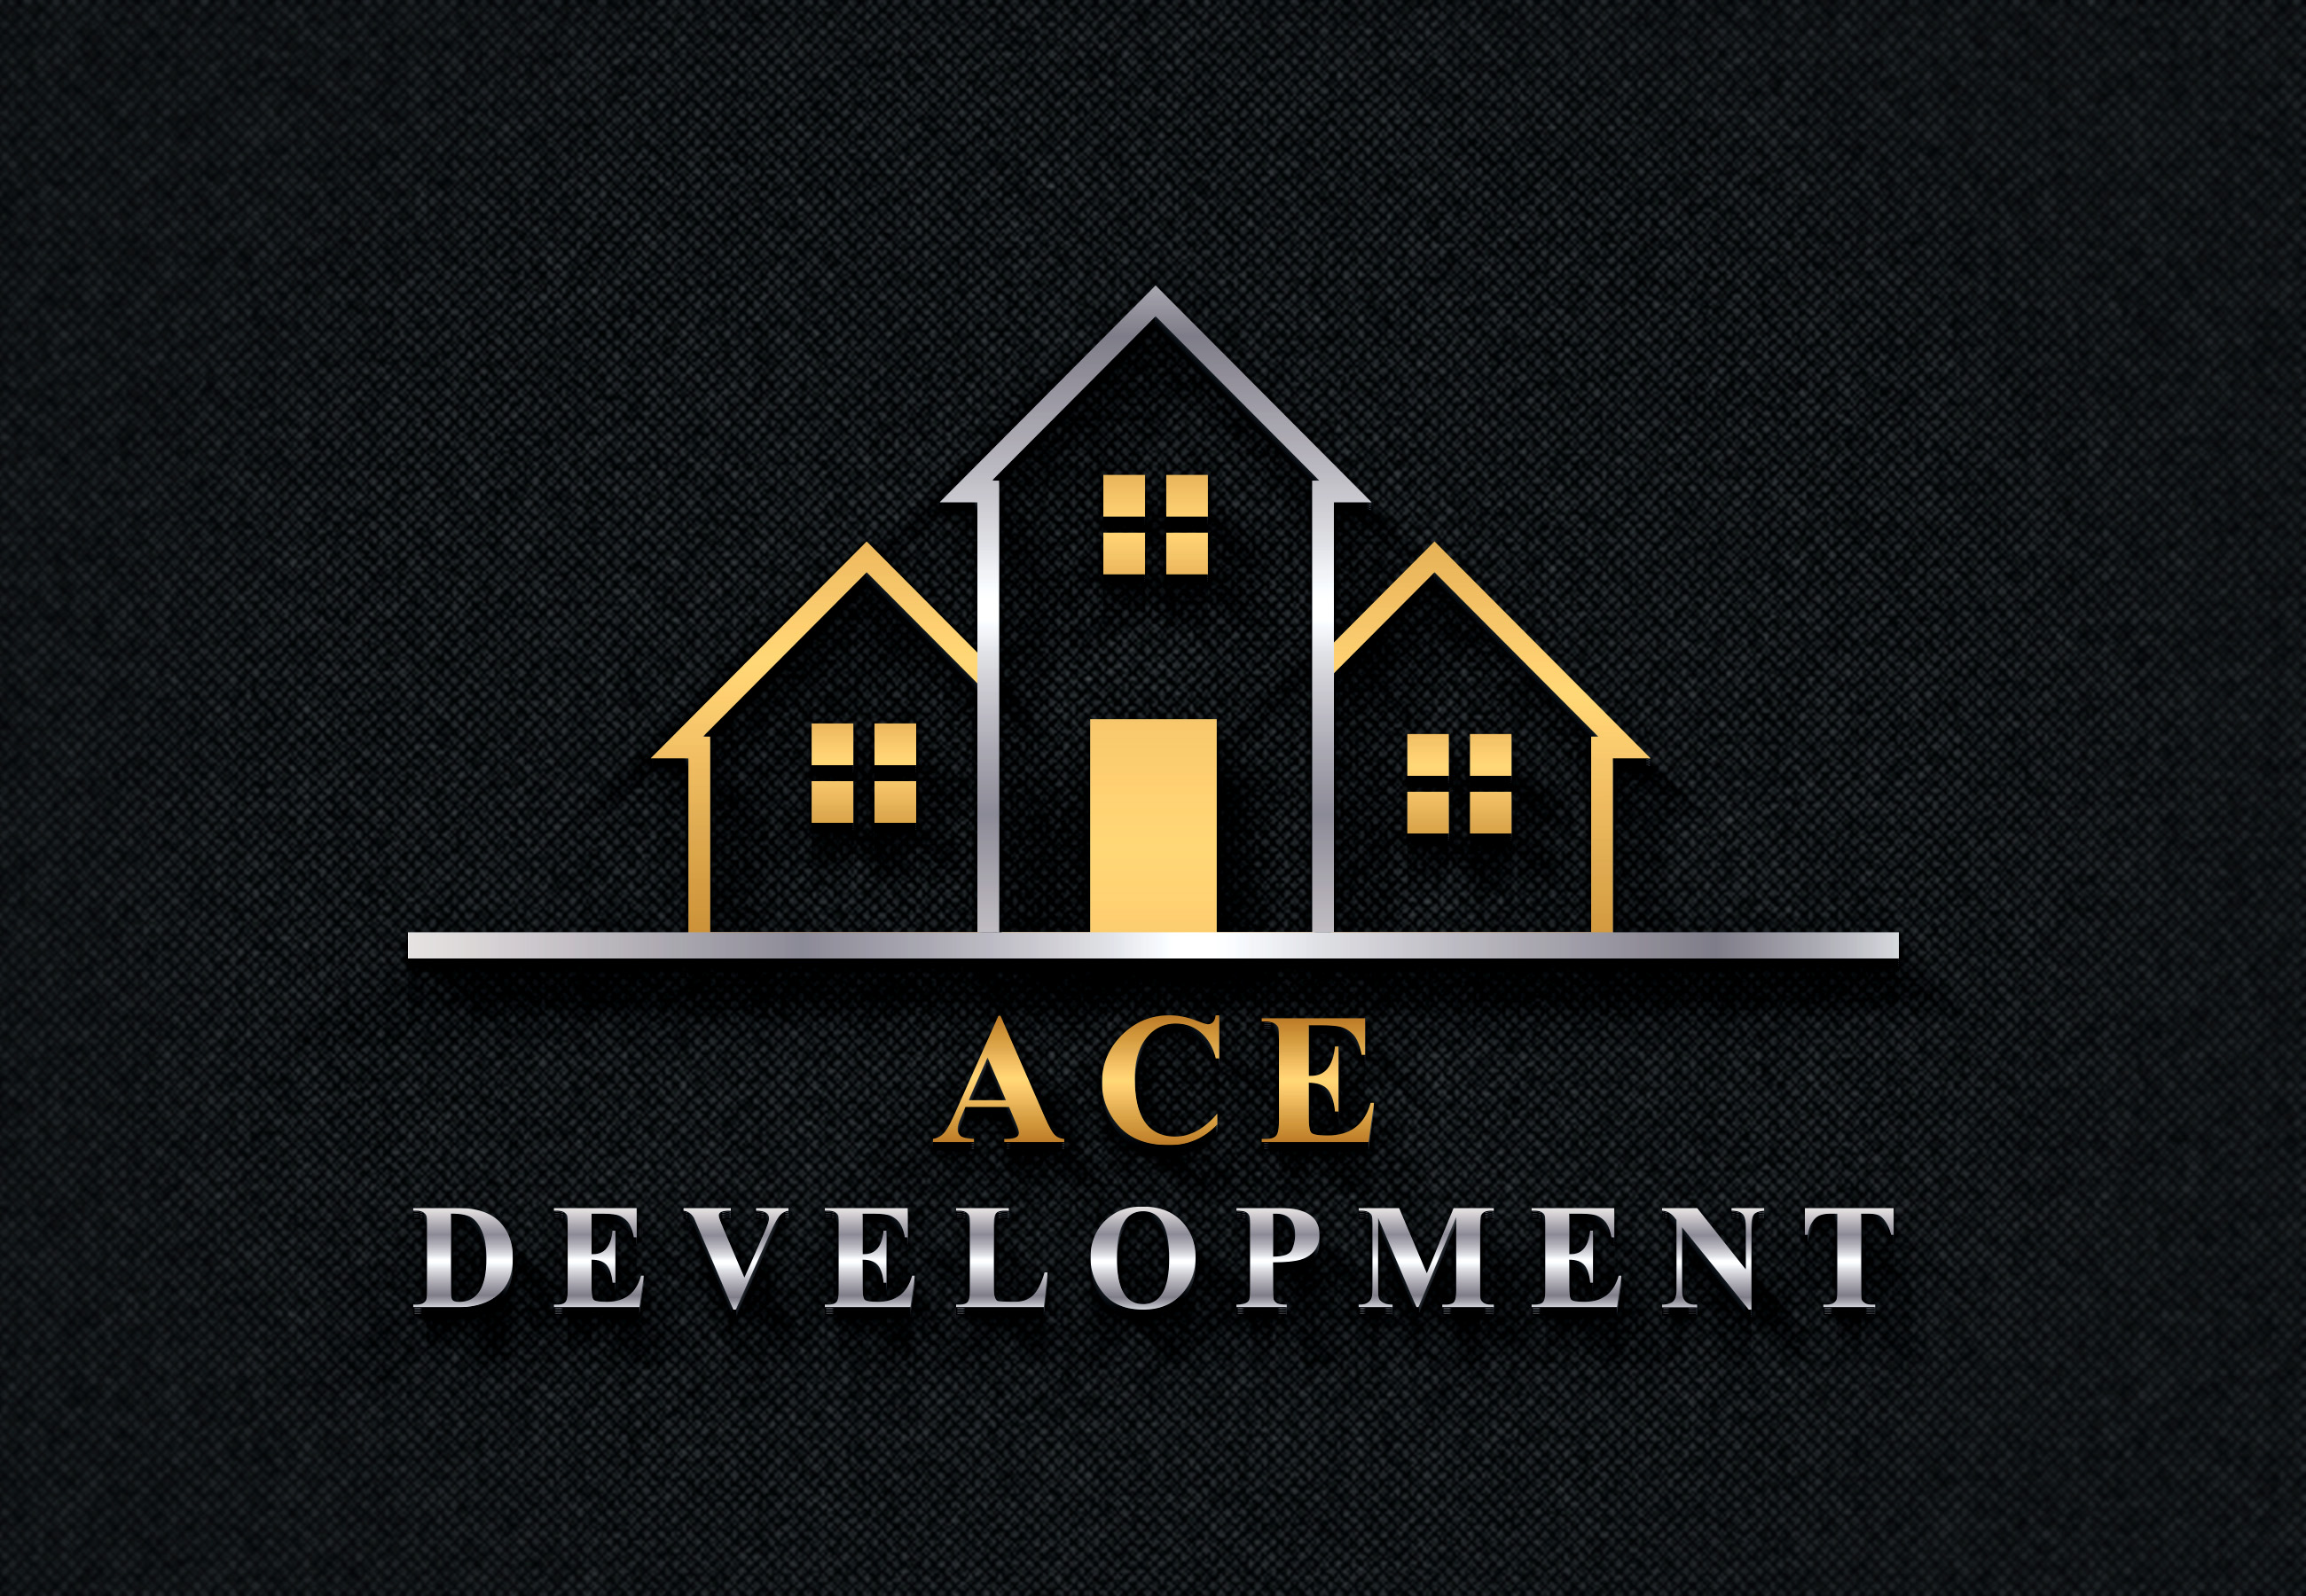 Logo Design by Umair ahmed Iqbal - Entry No. 102 in the Logo Design Contest Fun Logo Design for Ace development.